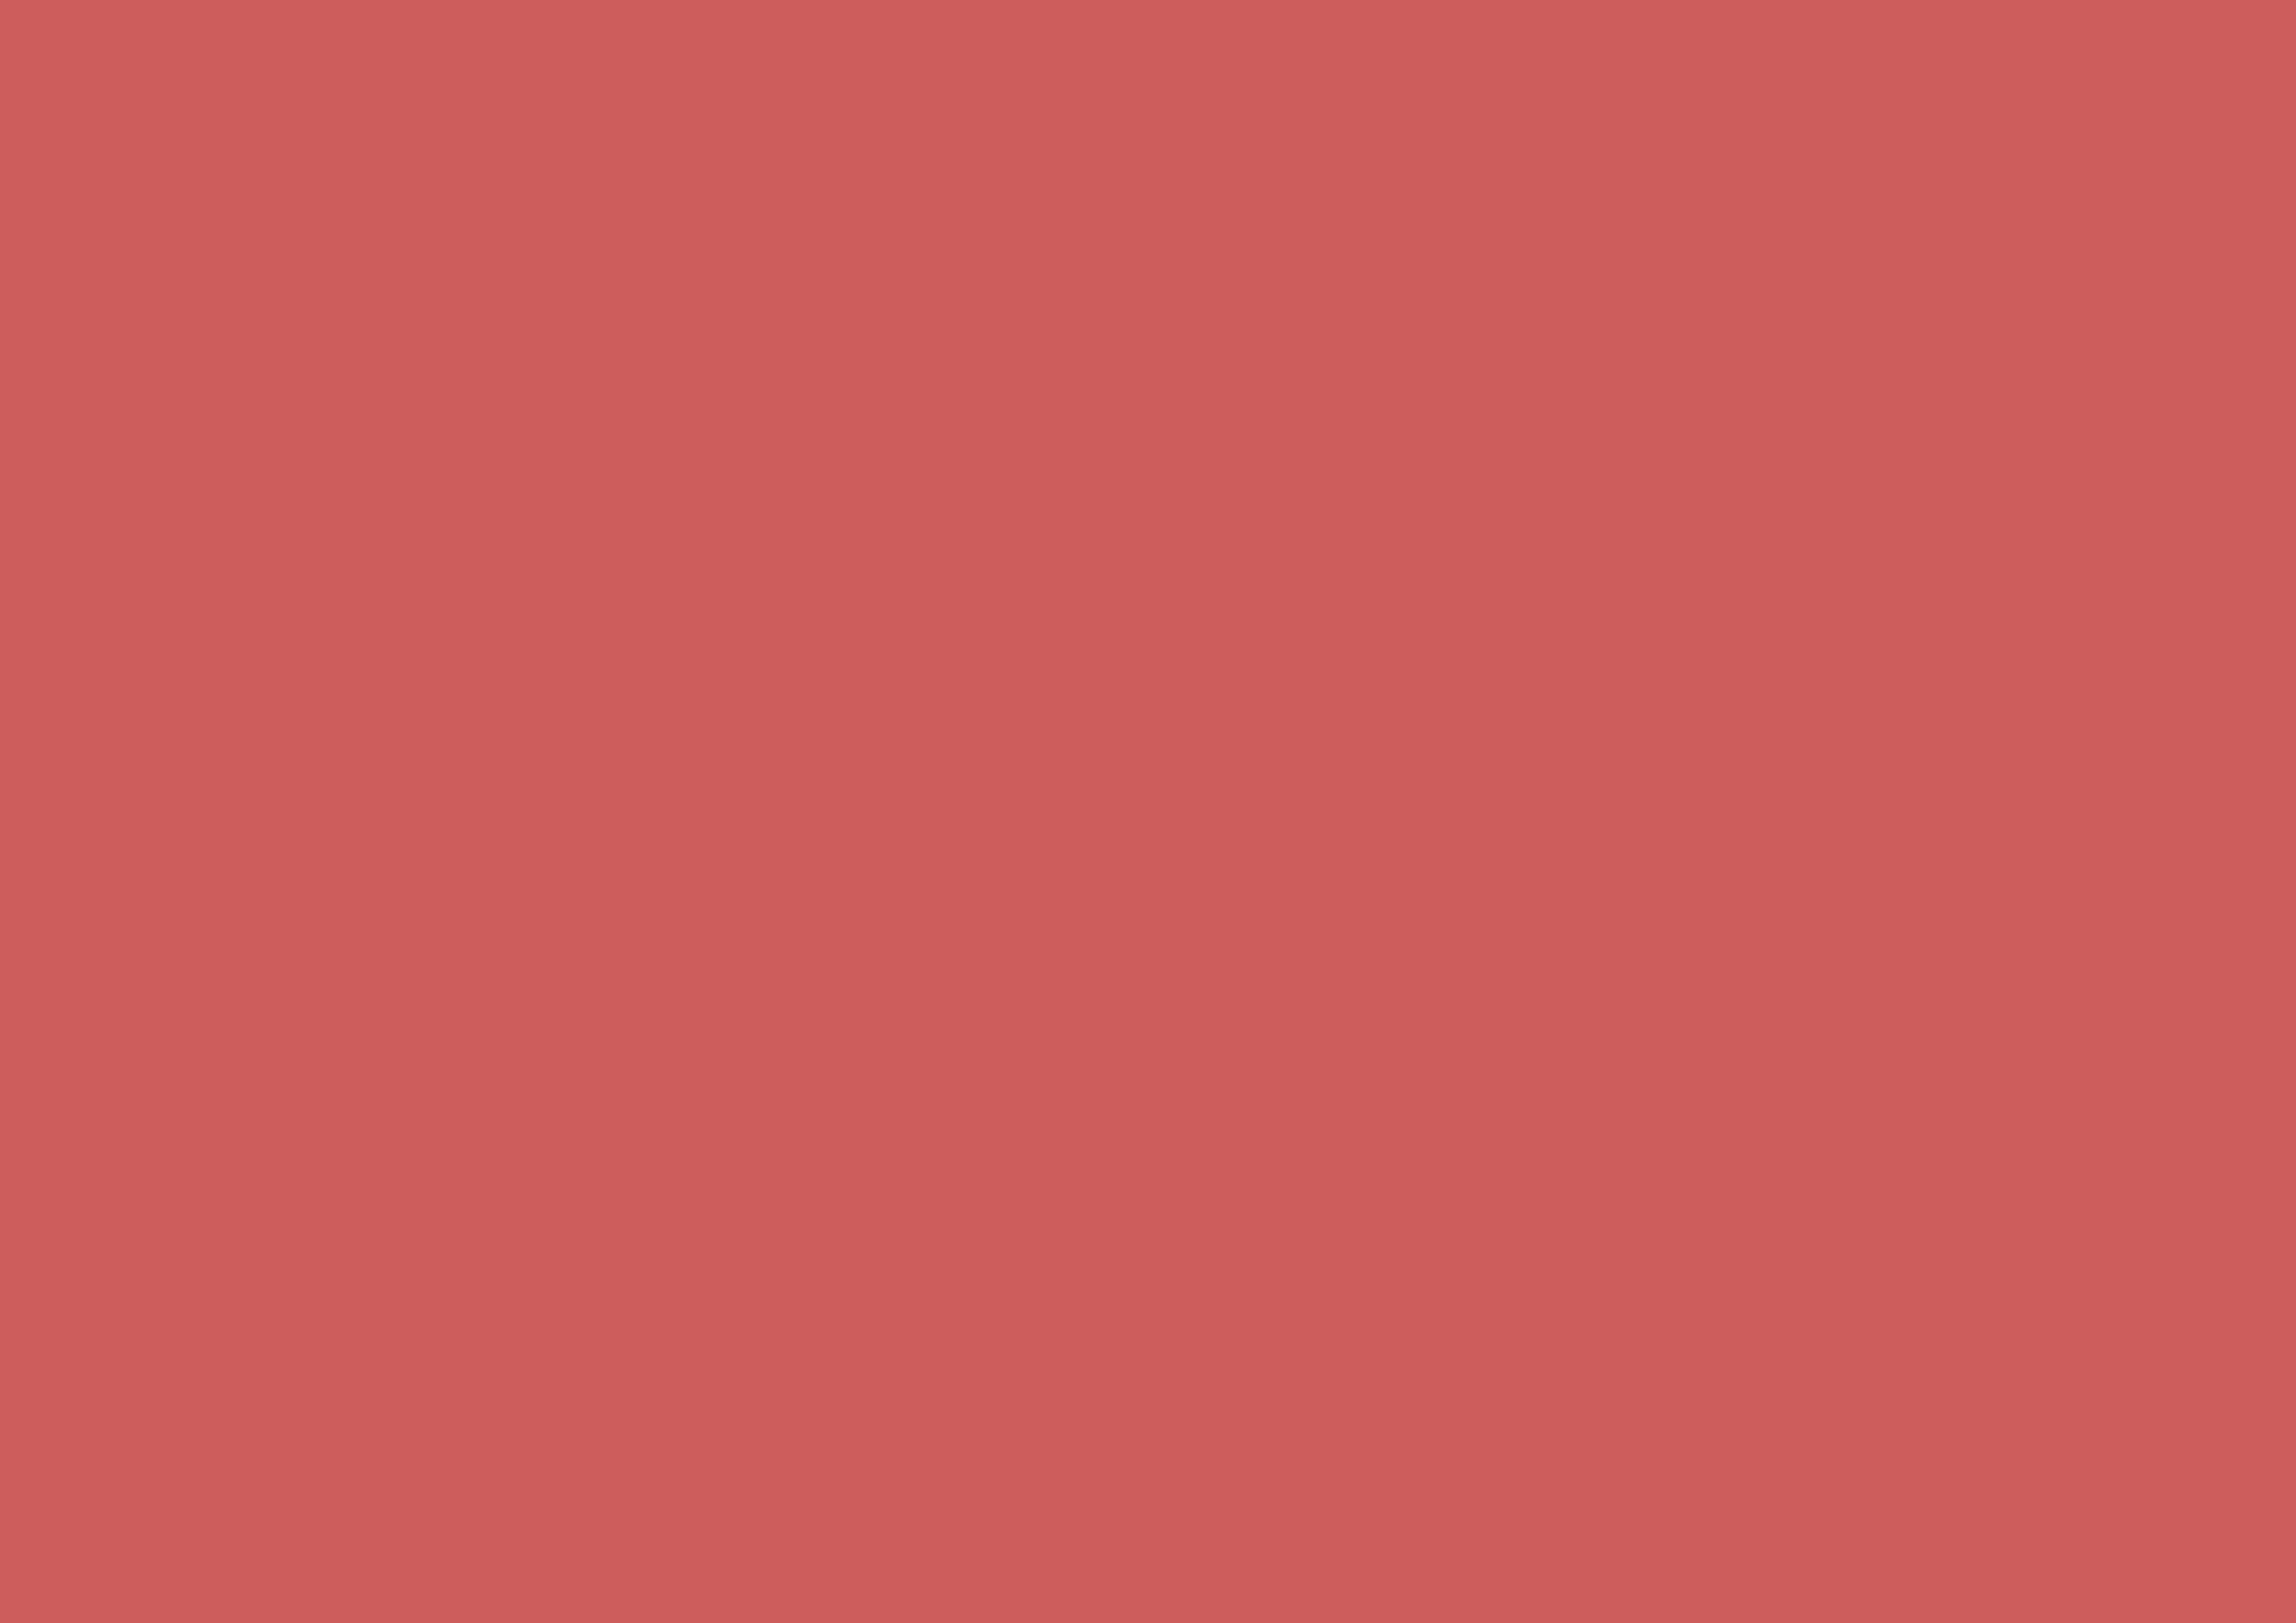 3508x2480 Indian Red Solid Color Background